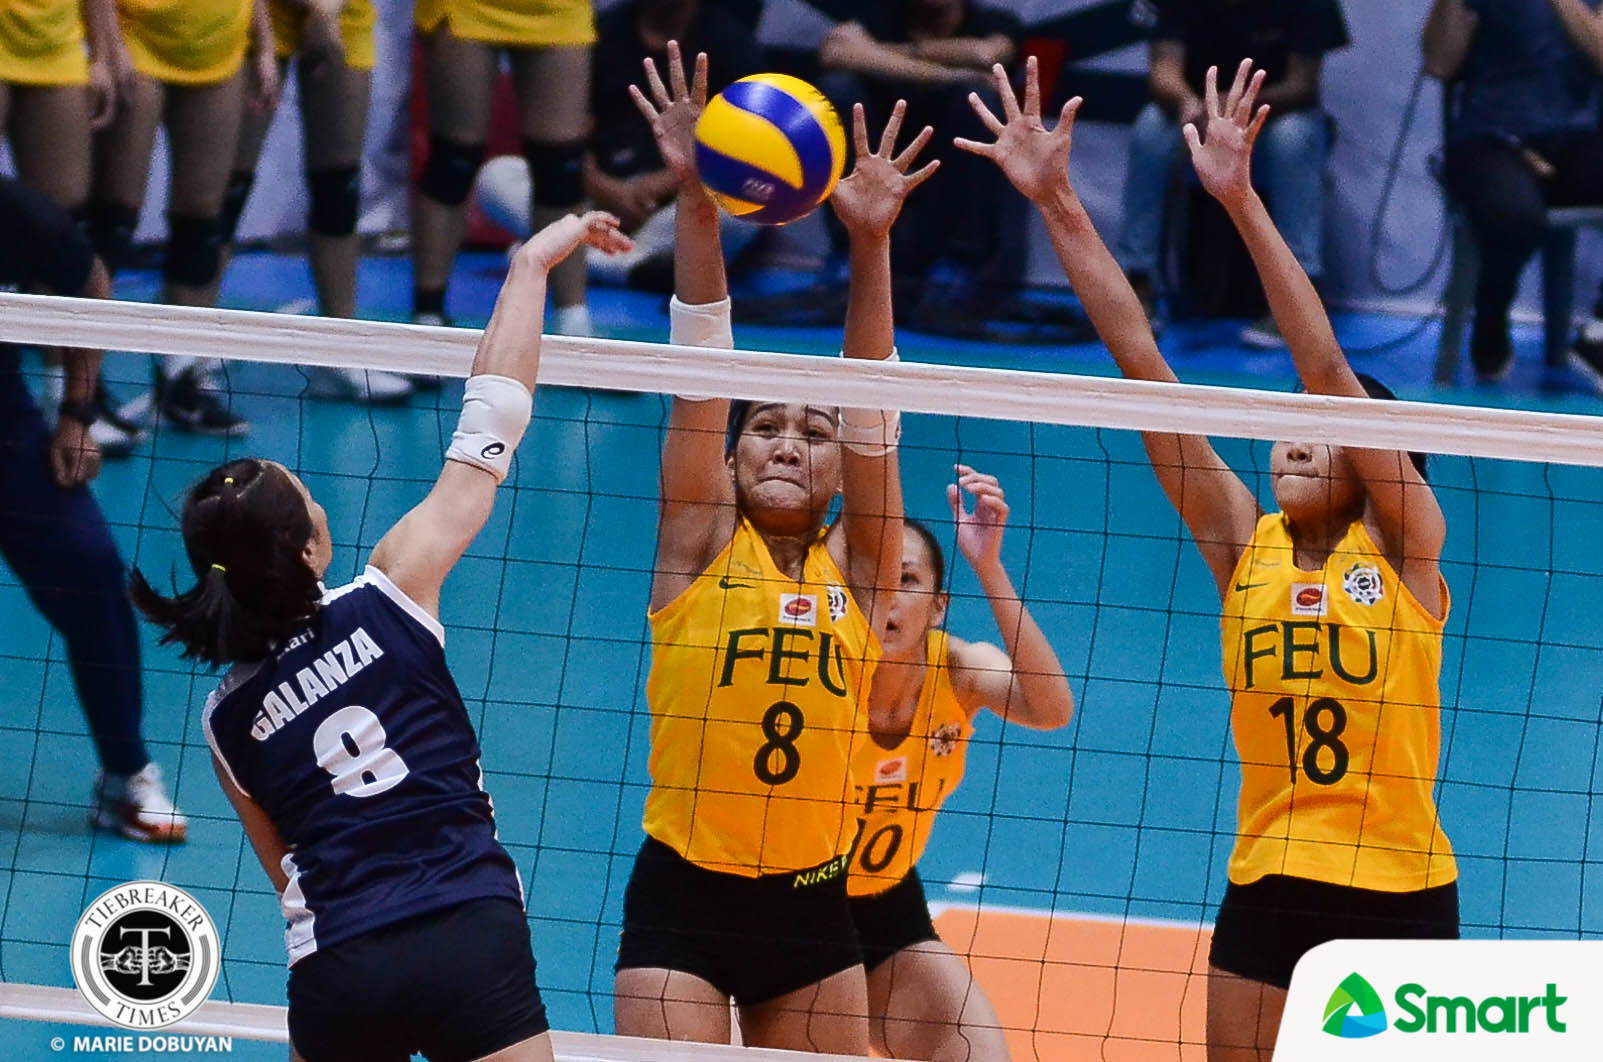 Tiebreaker Times FEU veterans need to adjust to young setter, says George Pascua FEU News UAAP Volleyball  UAAP Season 80 Women's Volleyball UAAP Season 80 FEU Women's Volleyball